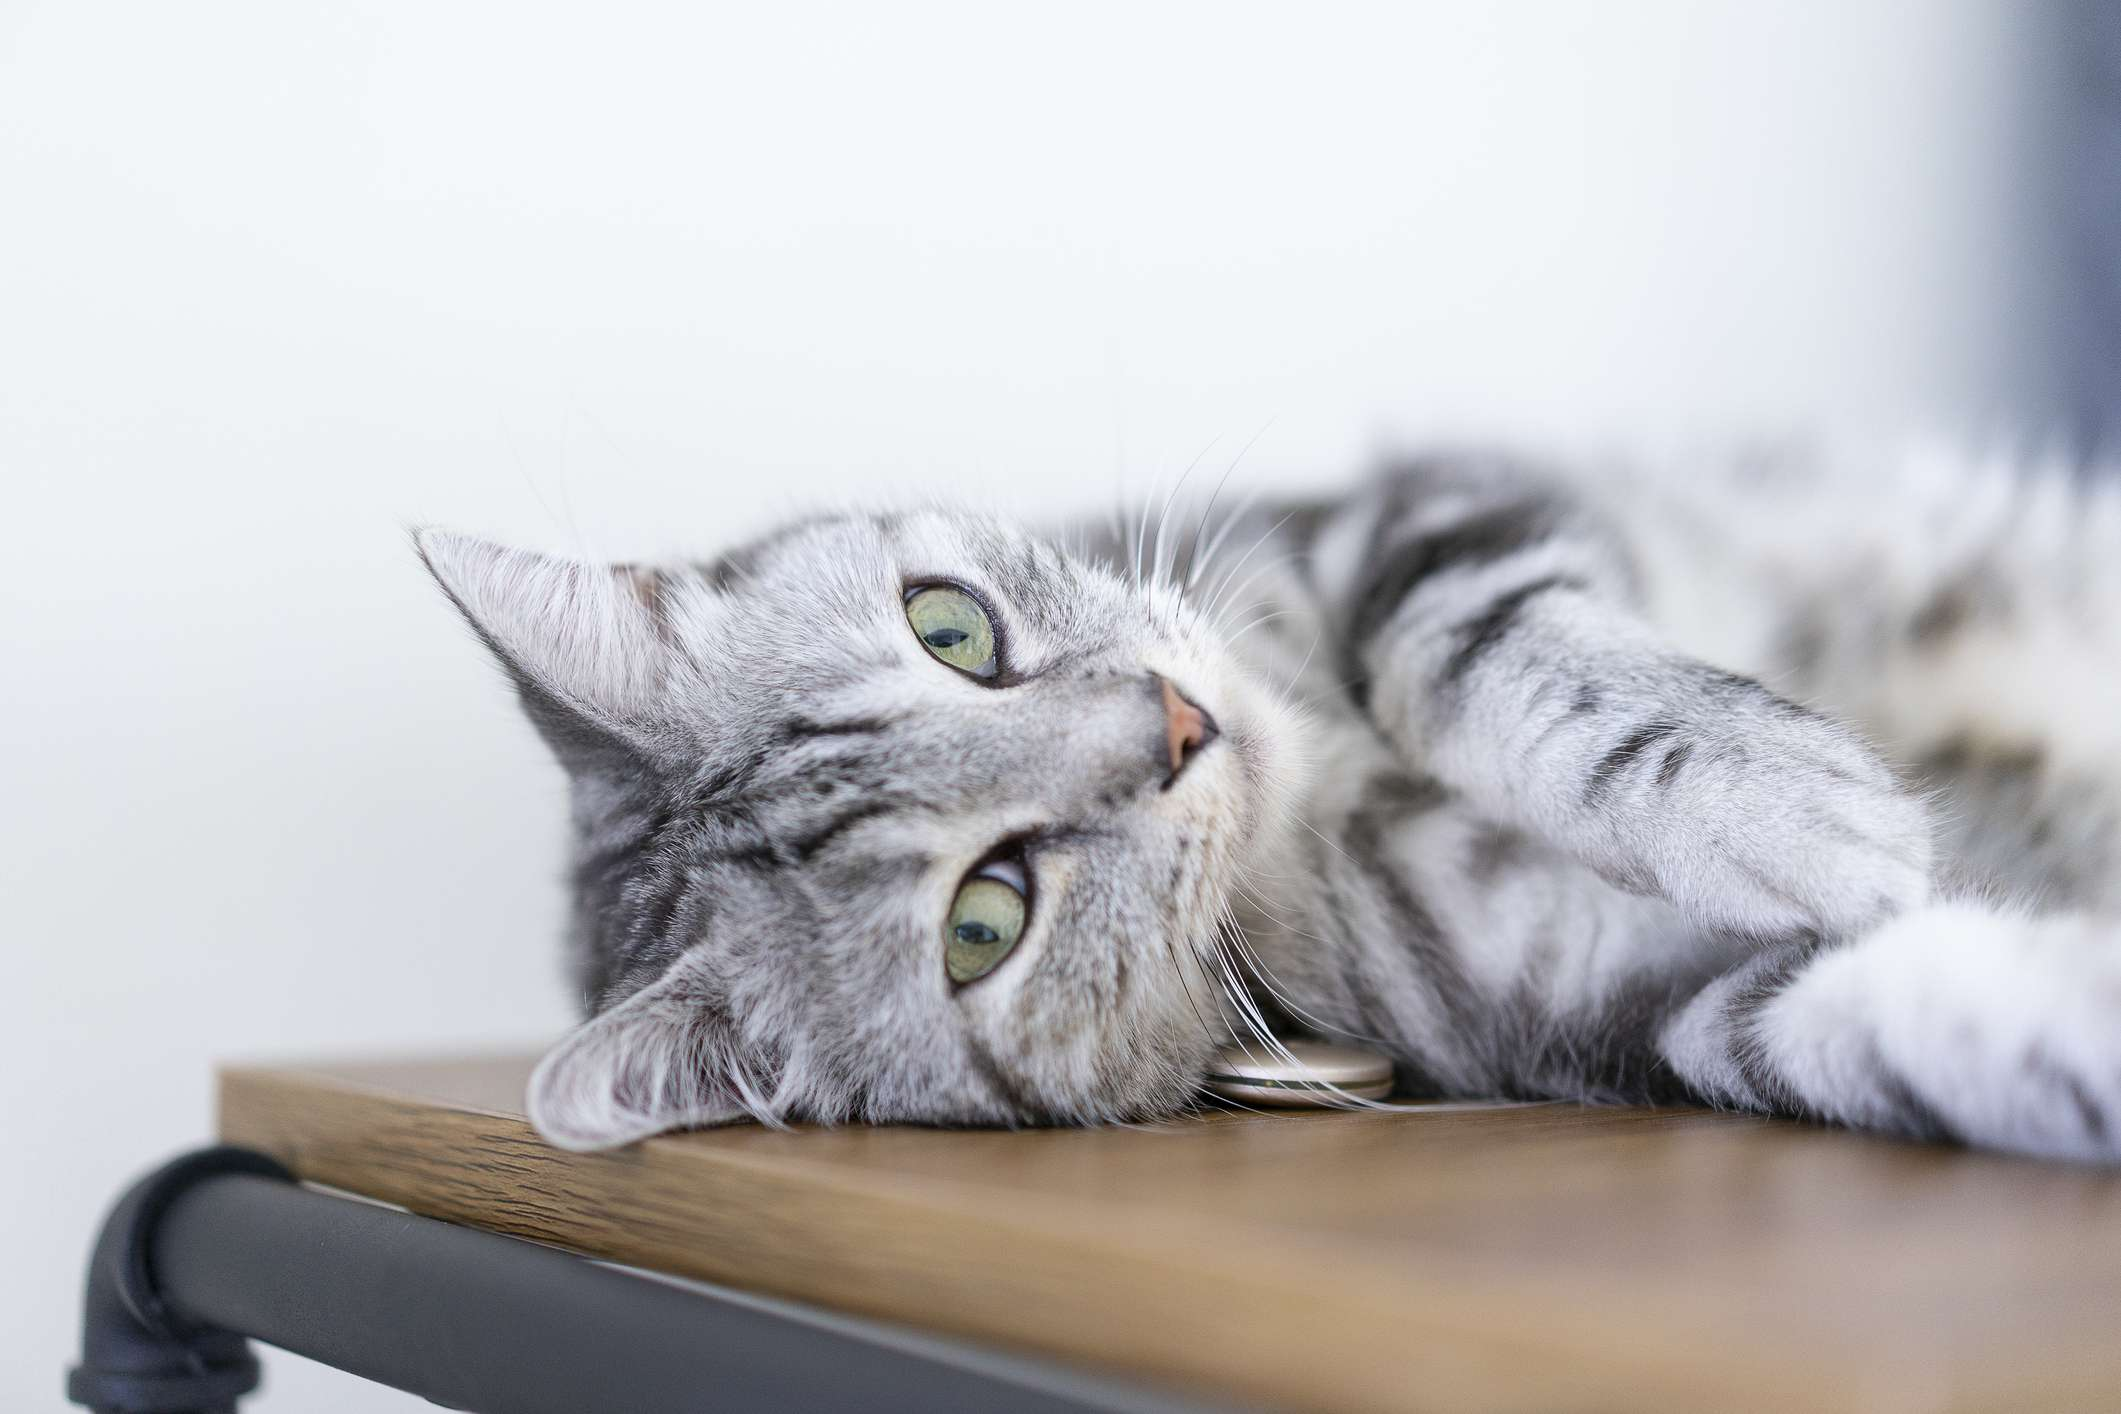 A grey, striped cat with green eyes